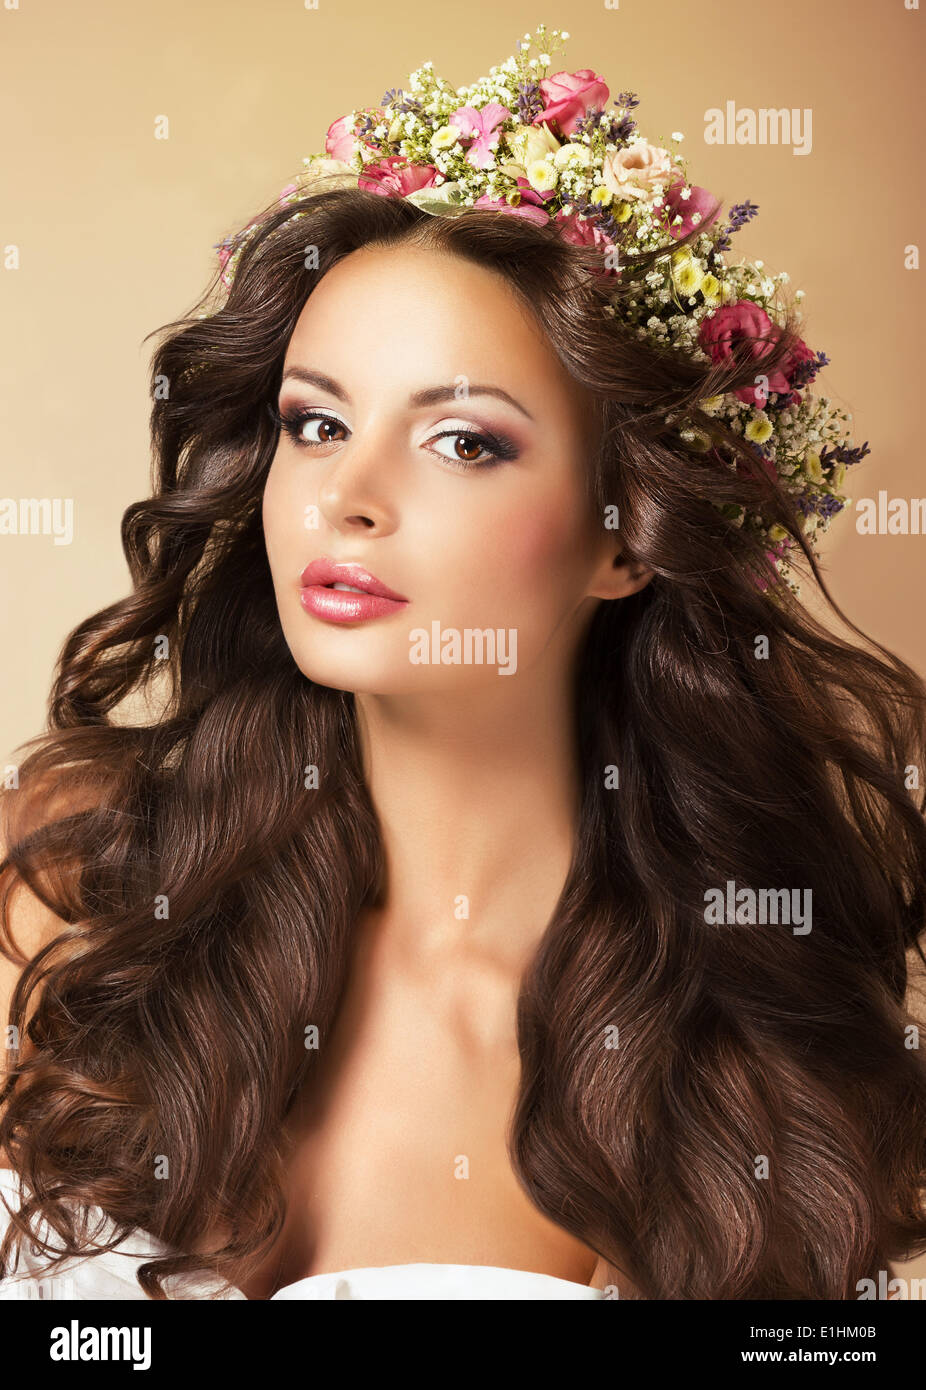 Classy Fashion Model with Perfect Flossy Brown Hair and Wreath of Flowers - Stock Image